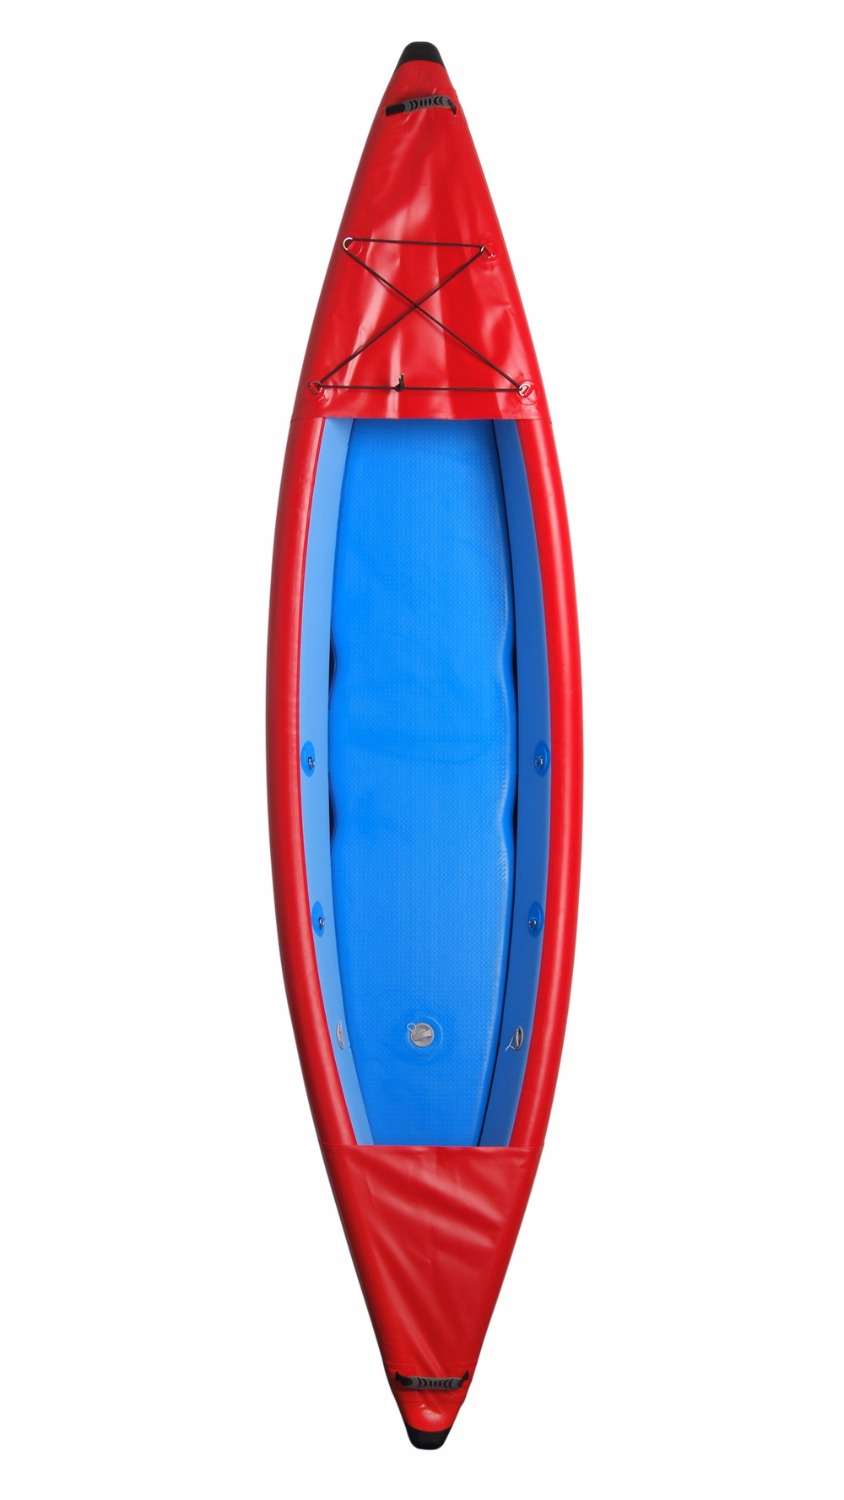 Outdoors Single Inflatable Fishing Kayak Sit On Top With Free All Accessories